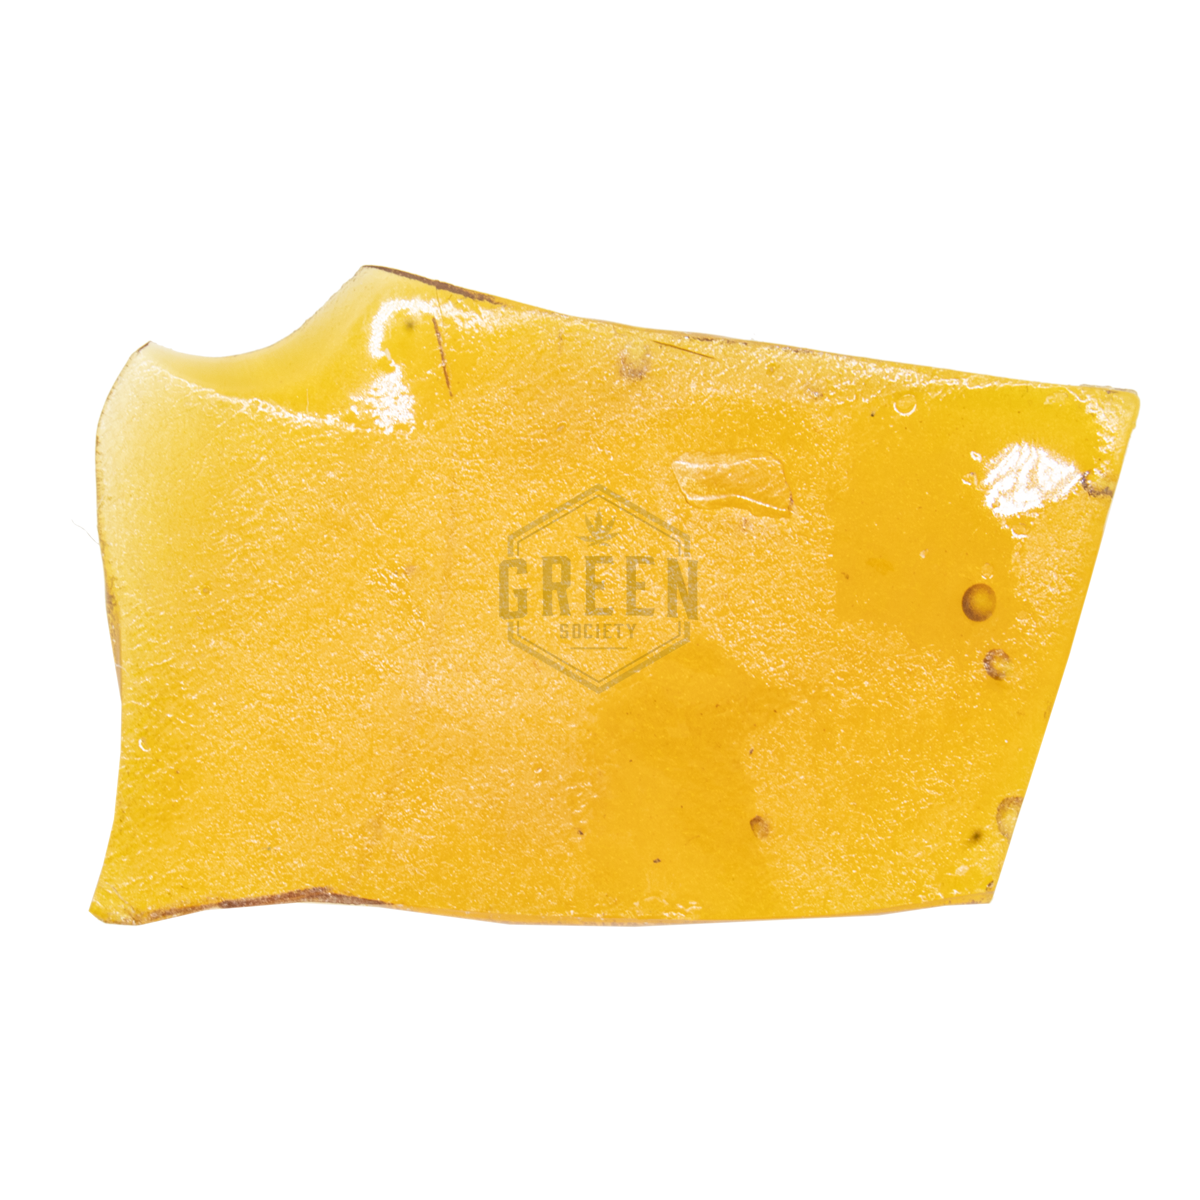 Golden Goat Shatter 2G Pack by Green Society - Image © 2018 Green Society. All Rights Reserved.